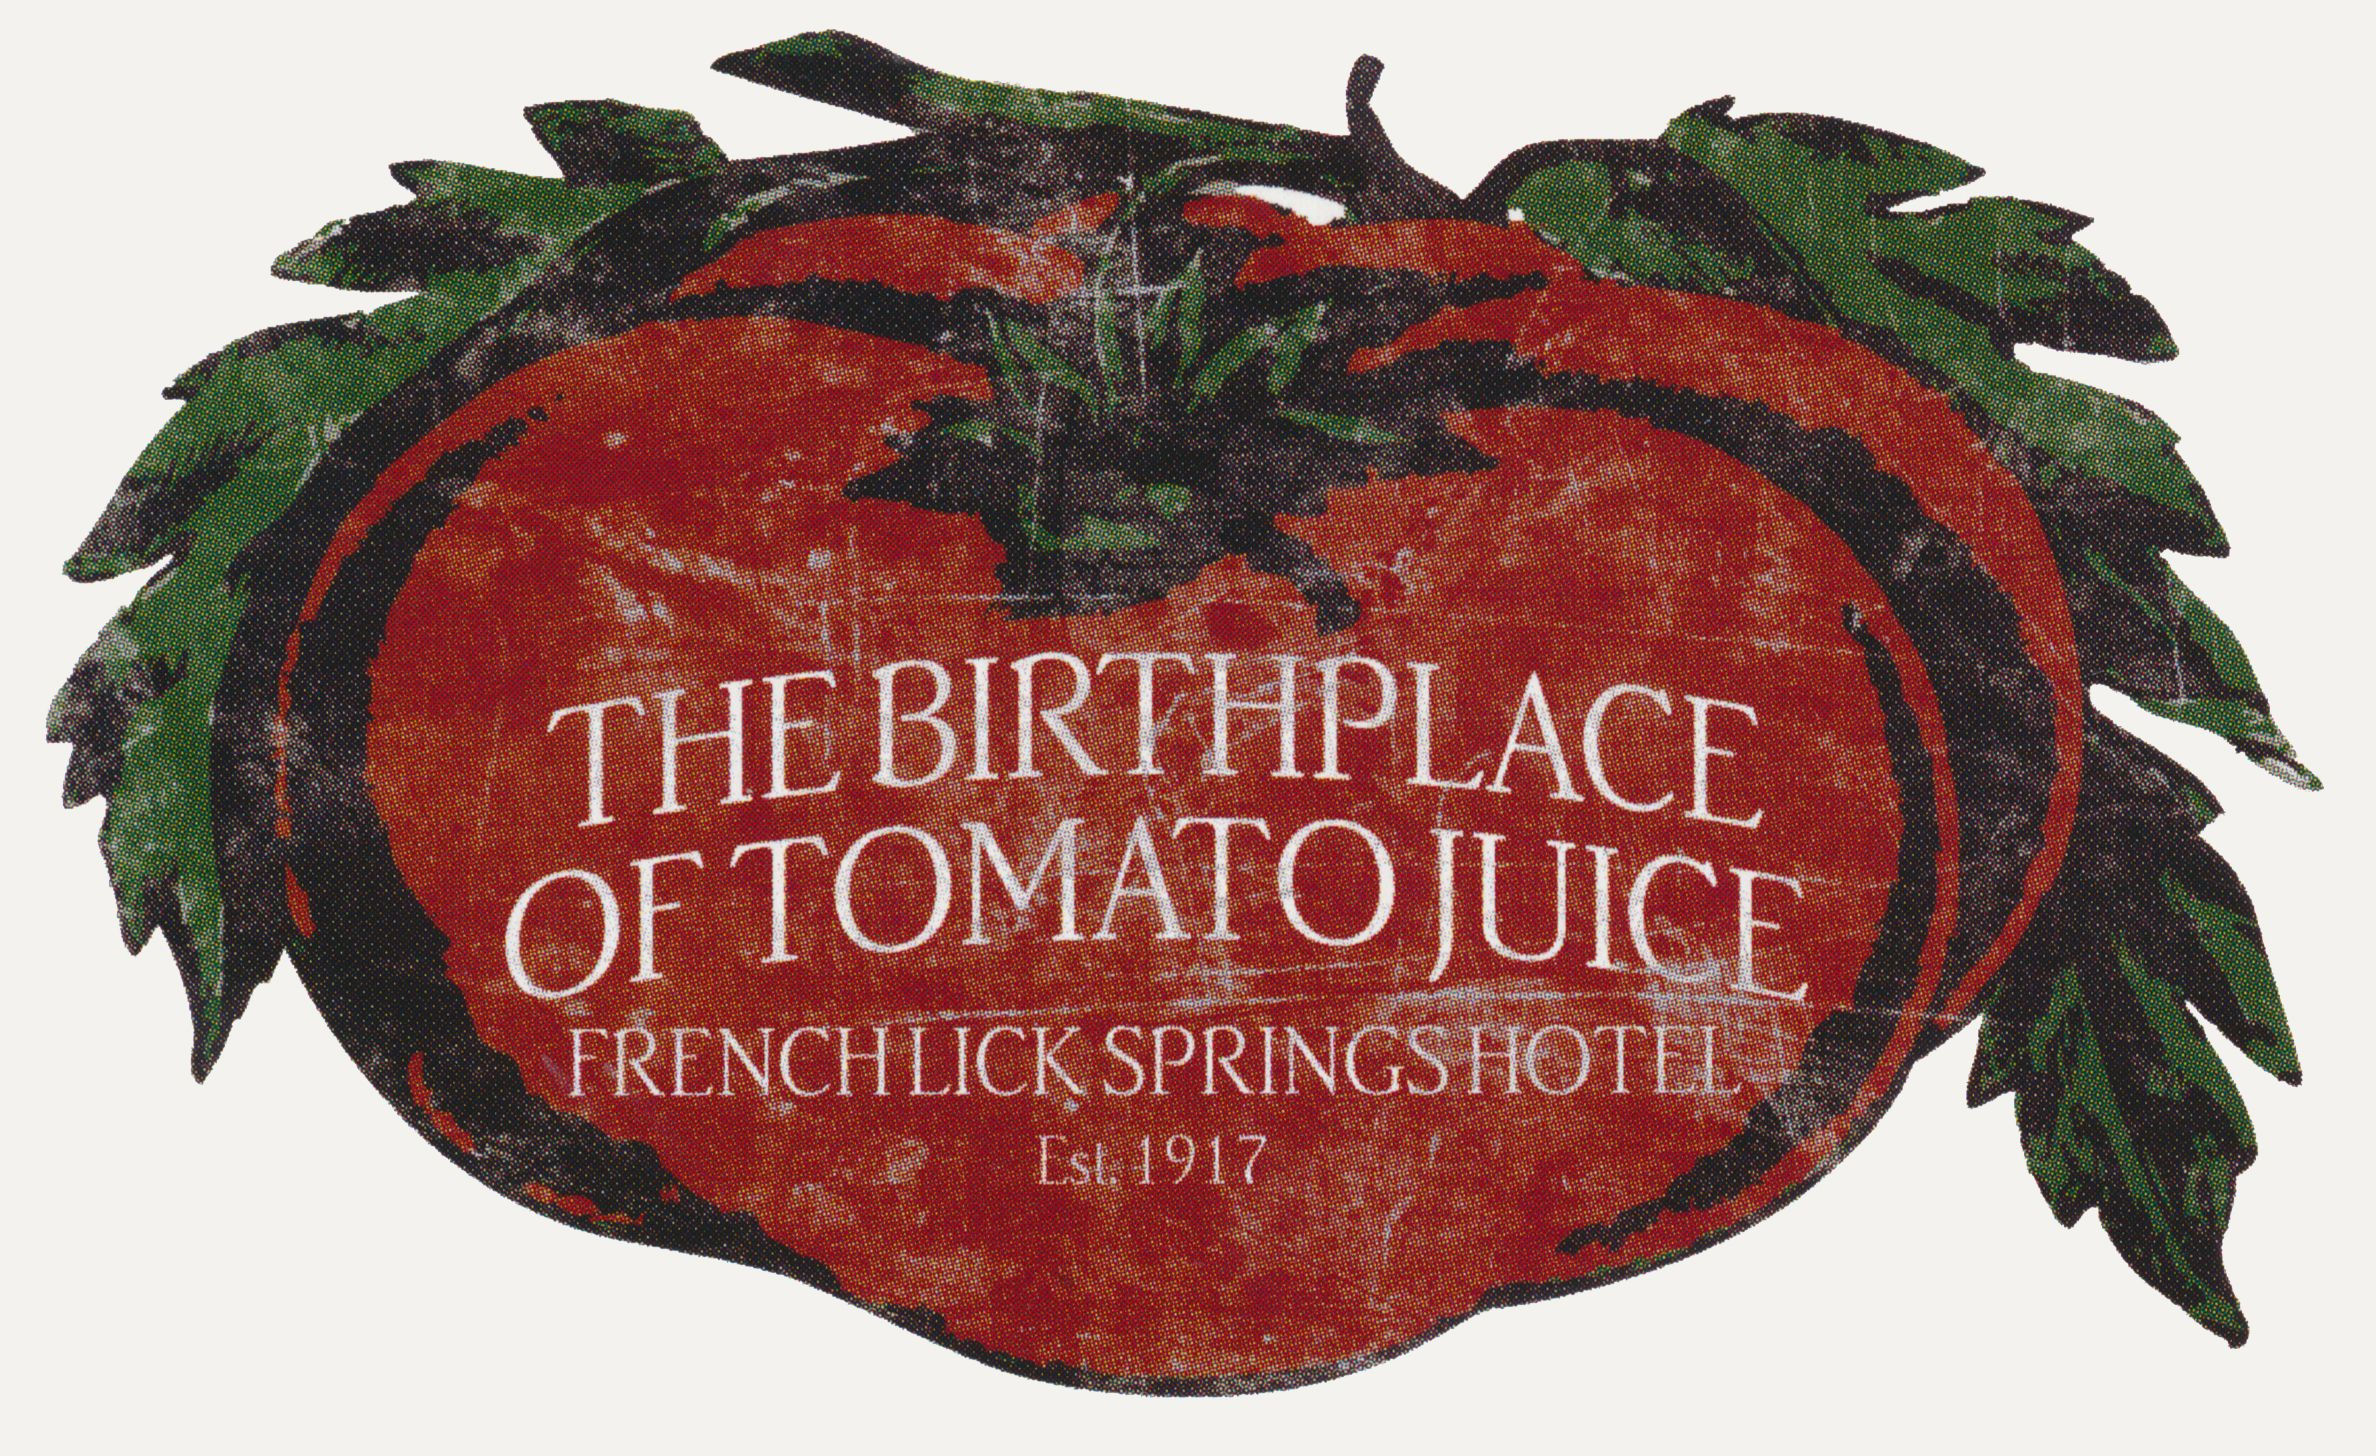 Did you know Tomato Juice was first served as a breakfast drink at French Lick Springs Hotel? Learn this fact and more on our new Historical Walking Tour. Stop by our Concierge Desk to get a brochure outlining the points of interest.